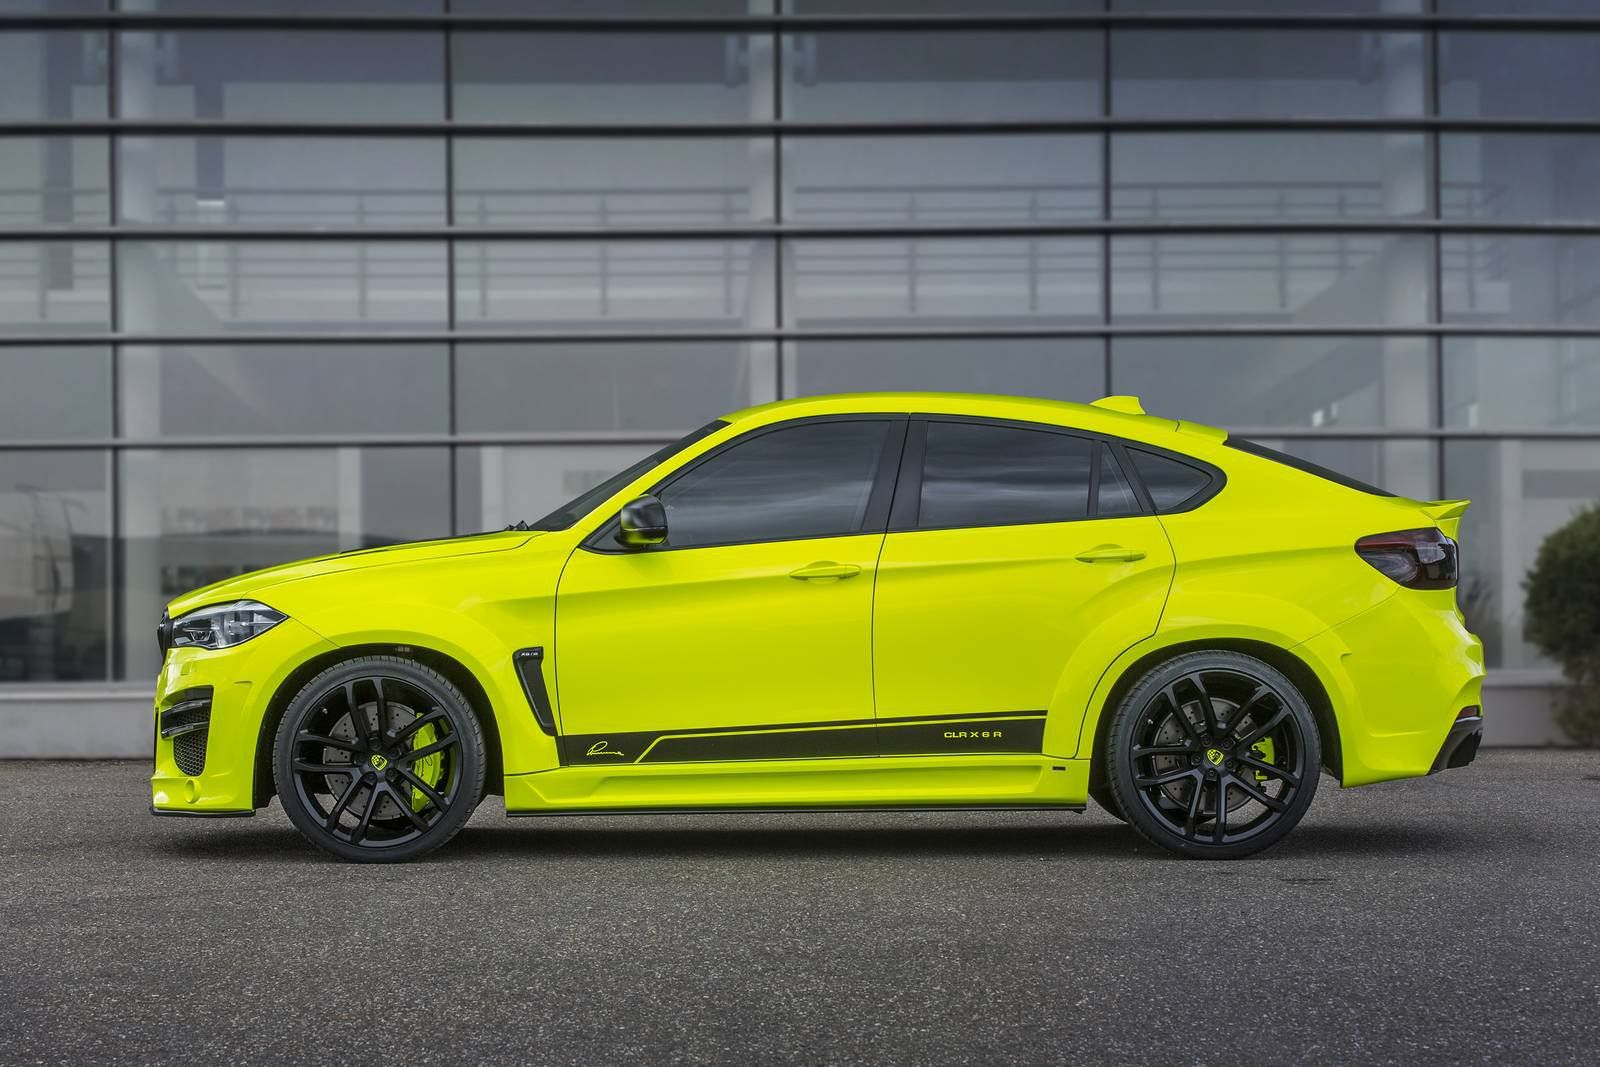 Lumma design unveils their latest bmw project based on the bmw x6 m and painted in